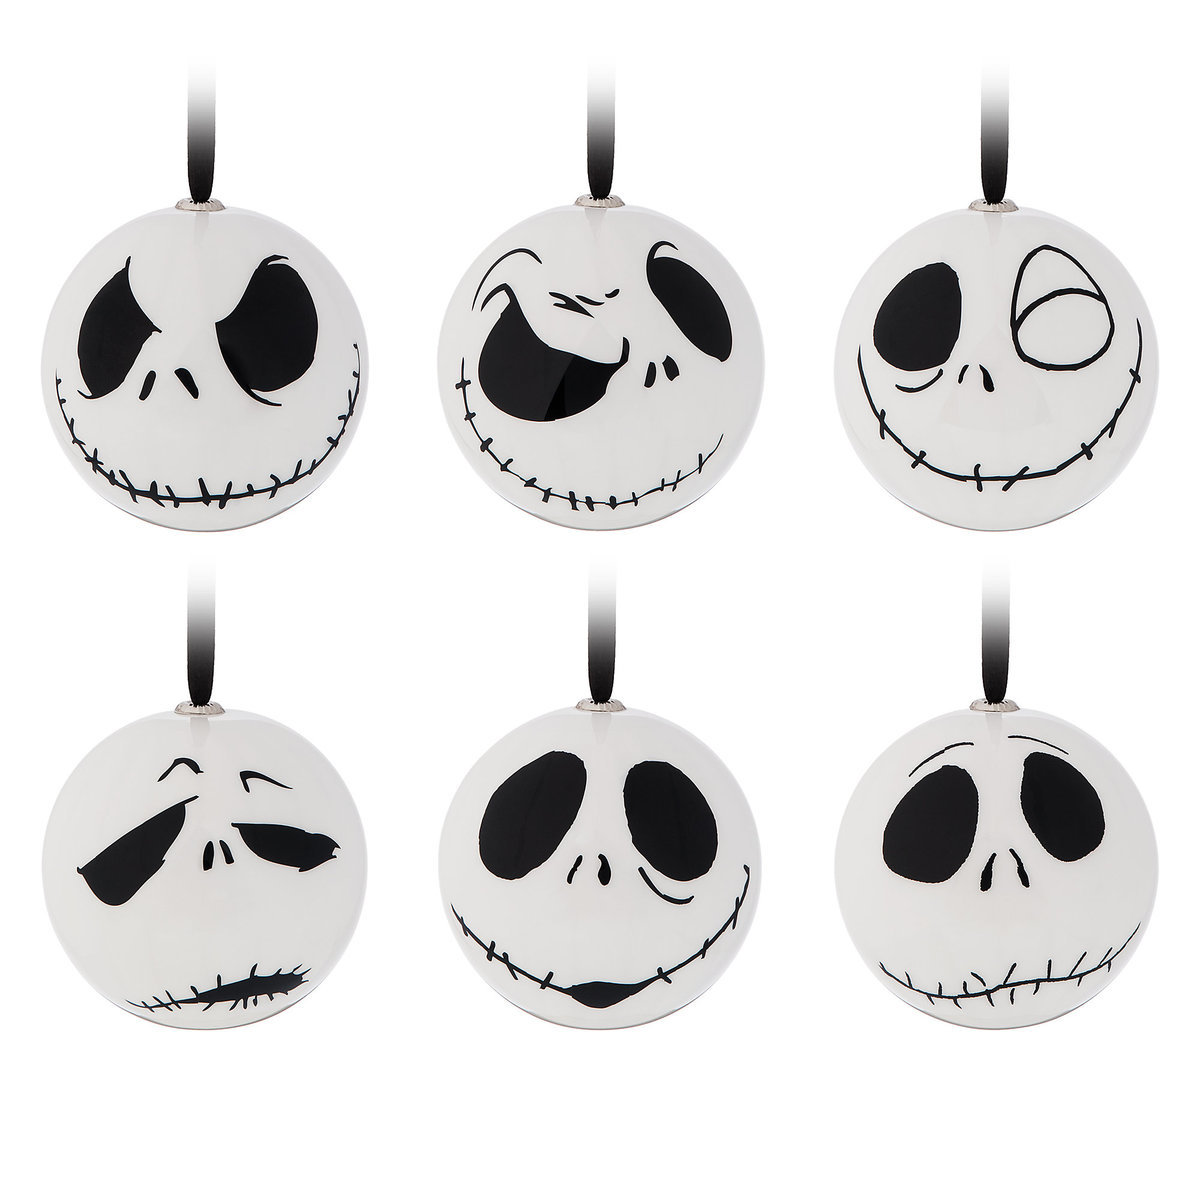 Jack Skellington Holiday Ornaments - The Nightmare Before Christmas ...